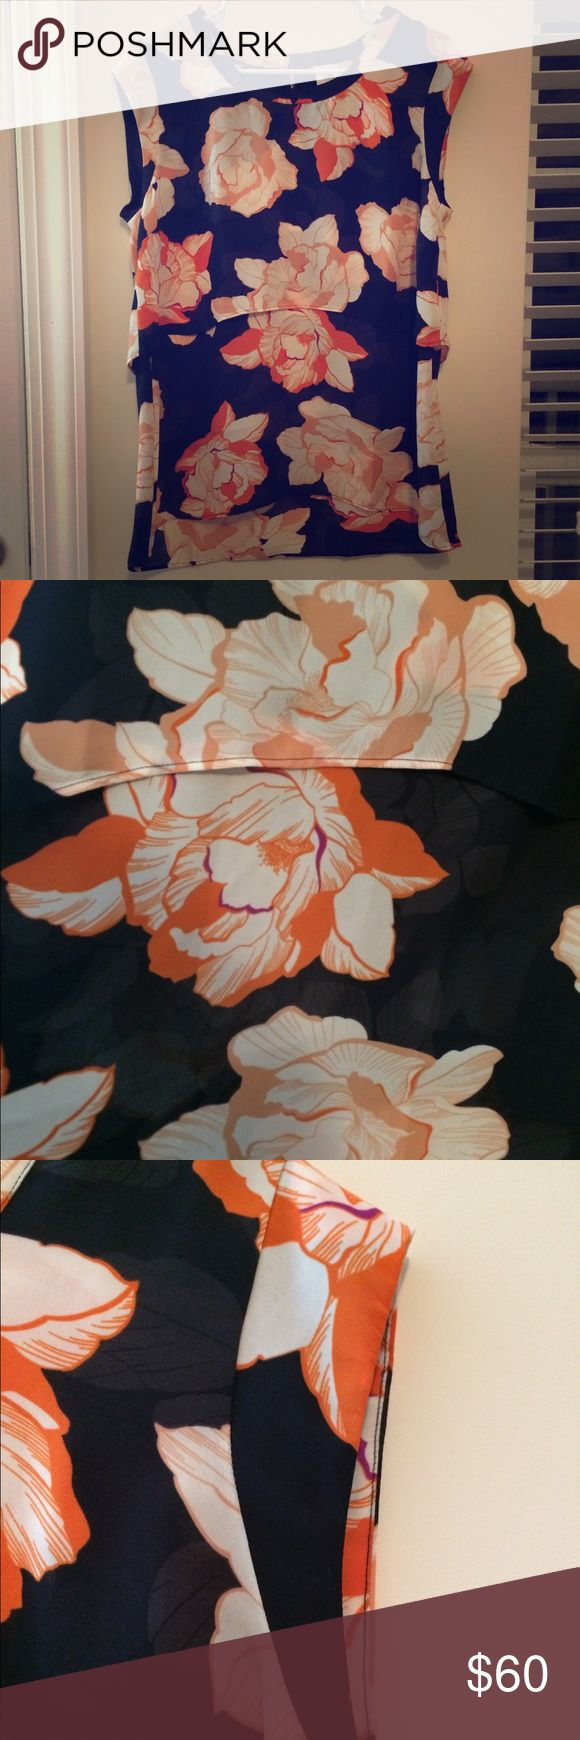 """EUC Cabi blossom top Spring 2015 style #5030 blossom top size medium. EUC No rips, stains or holes. Sad this doesn't fit anymore because this is one of my favorite tops. Adorable tiered layers and slight cap sleeve and no gapping under armpits so your bra is covered. The best color combo of navy, orange, white and accents of magenta. Armpit to armpit 20"""" armpit to hem 18"""" works great with pants, shorts or skirts--super versatile. Meant to be loose but size up or down depending on how you…"""